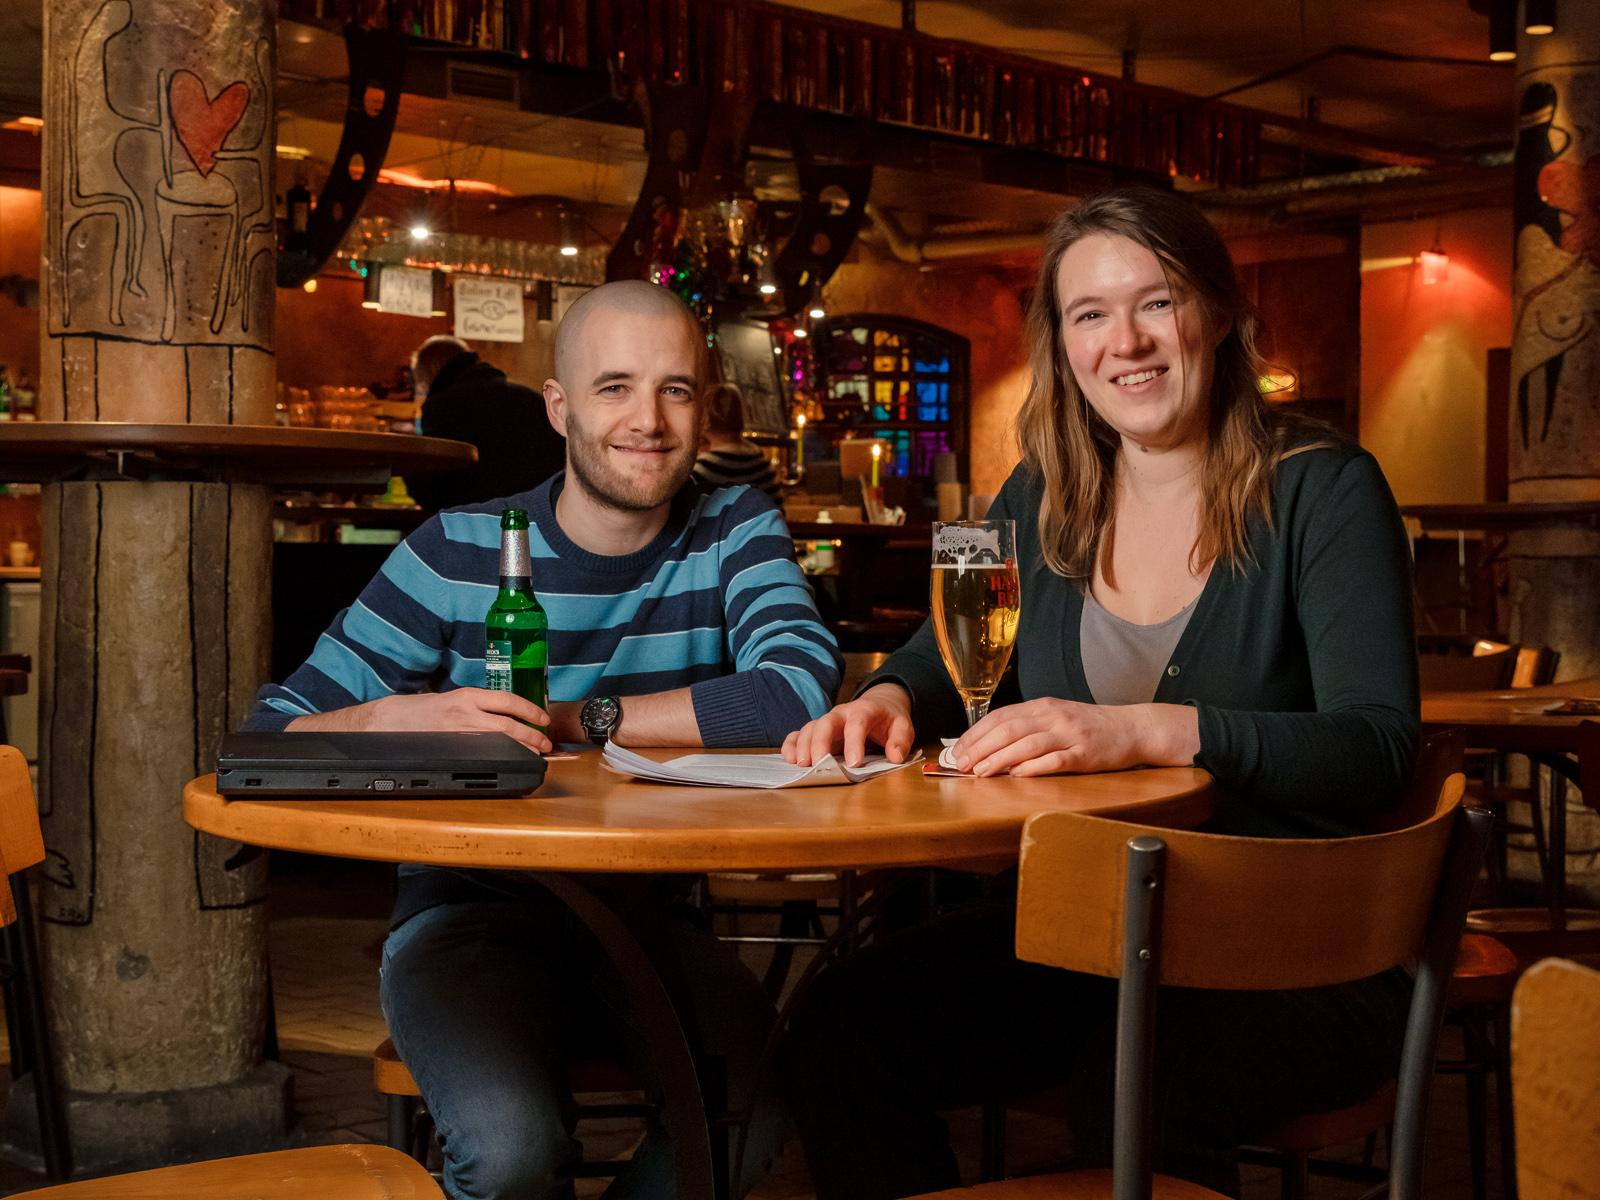 Anouk Vlug and Valentin Ludwig sitting with a beer in the pub.